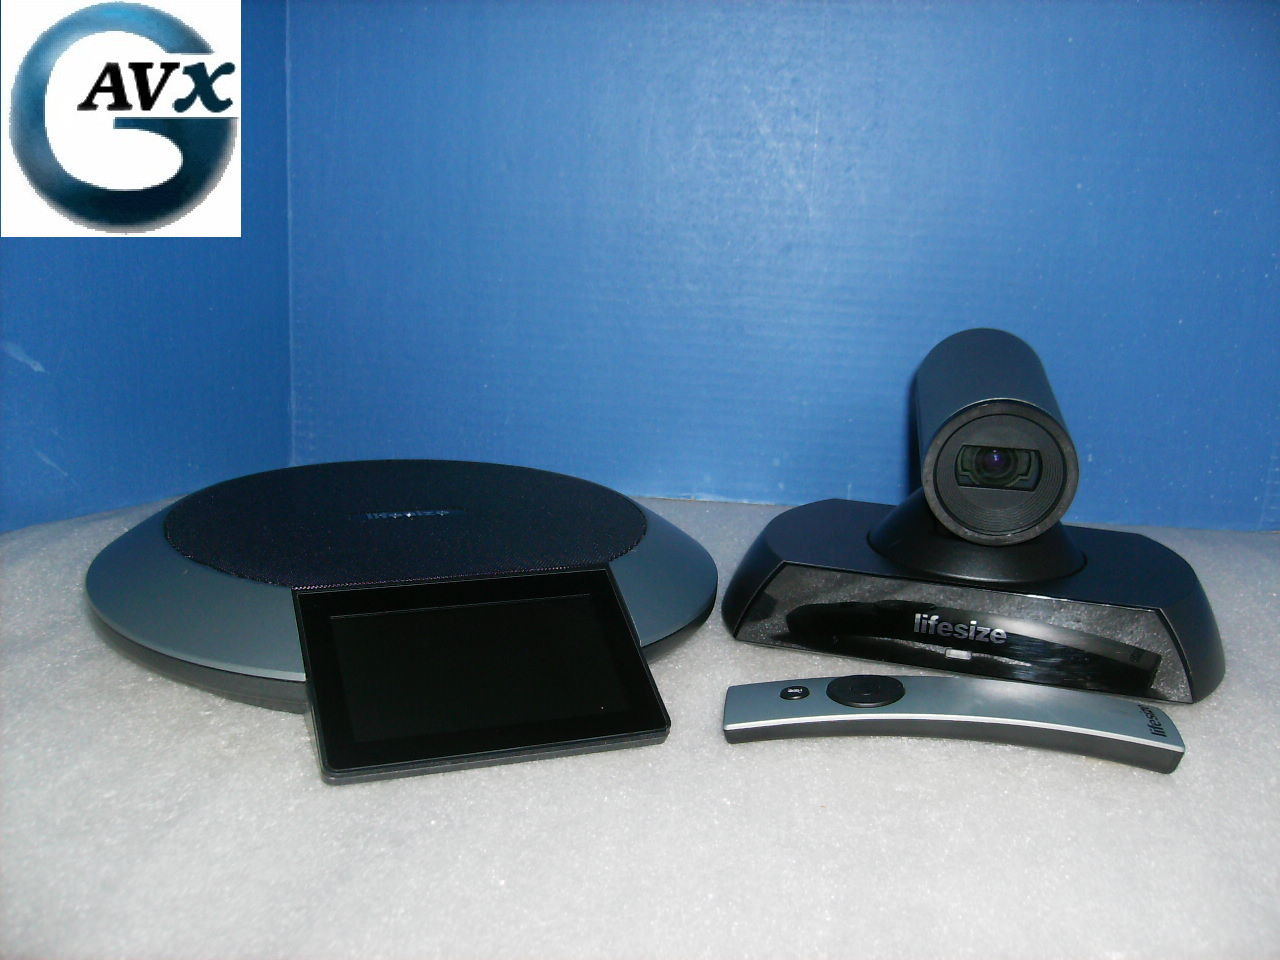 Used Lifesize Video Conference Systems Gavx